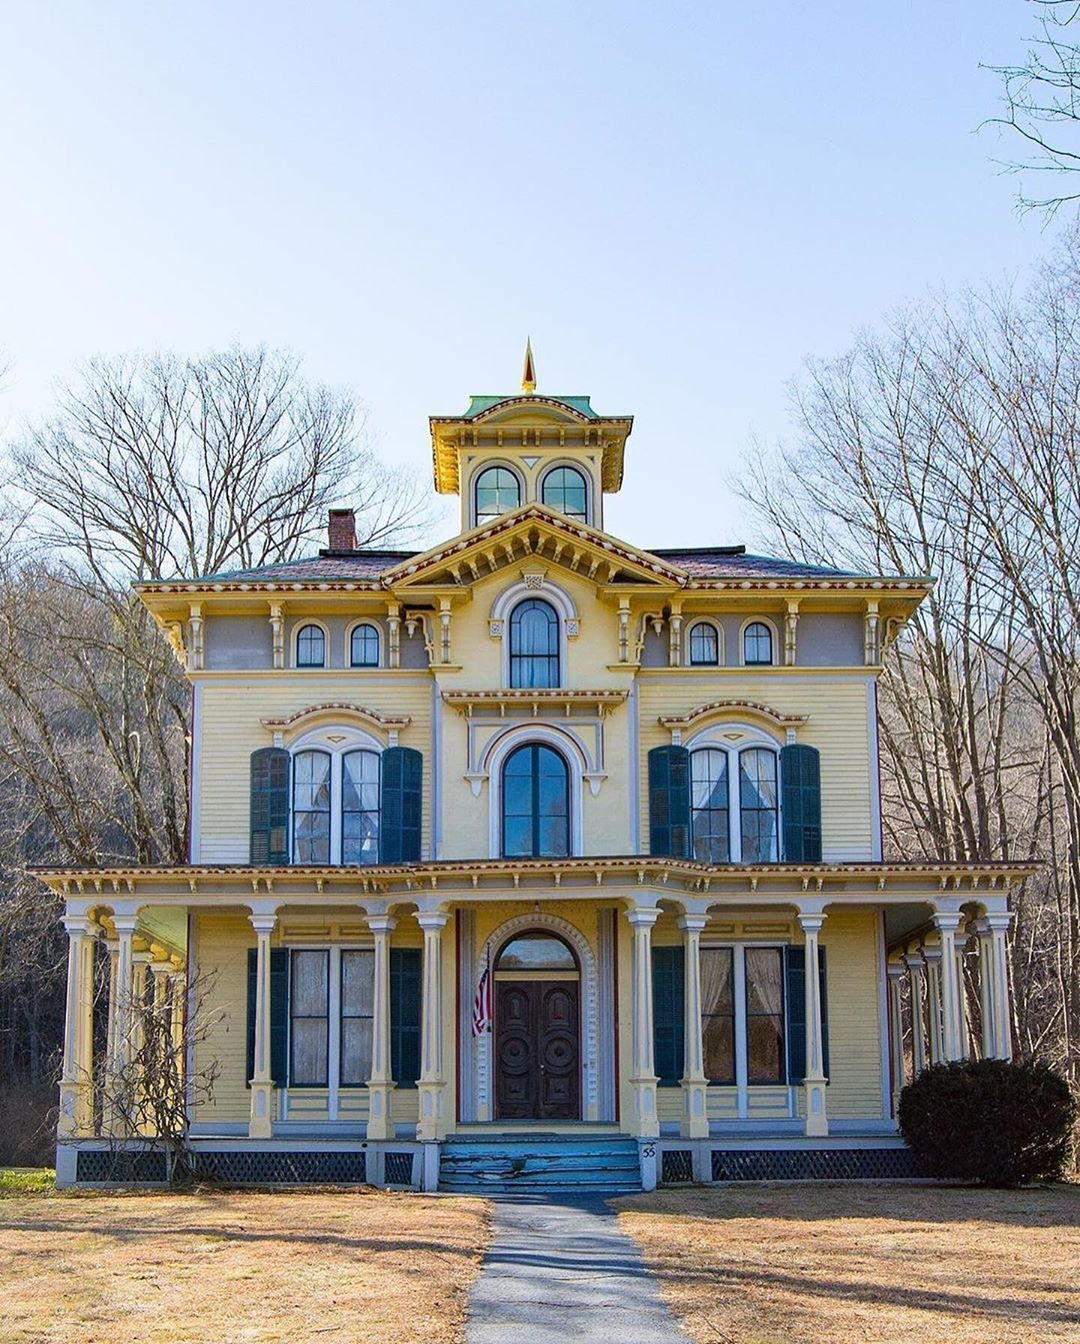 3 498 Likes 43 Comments Archi Ologie On Instagram No Name Thursday Feature Make Sure You Swipe To In 2020 Pastel House Victorian Homes Vintage Style Decorating